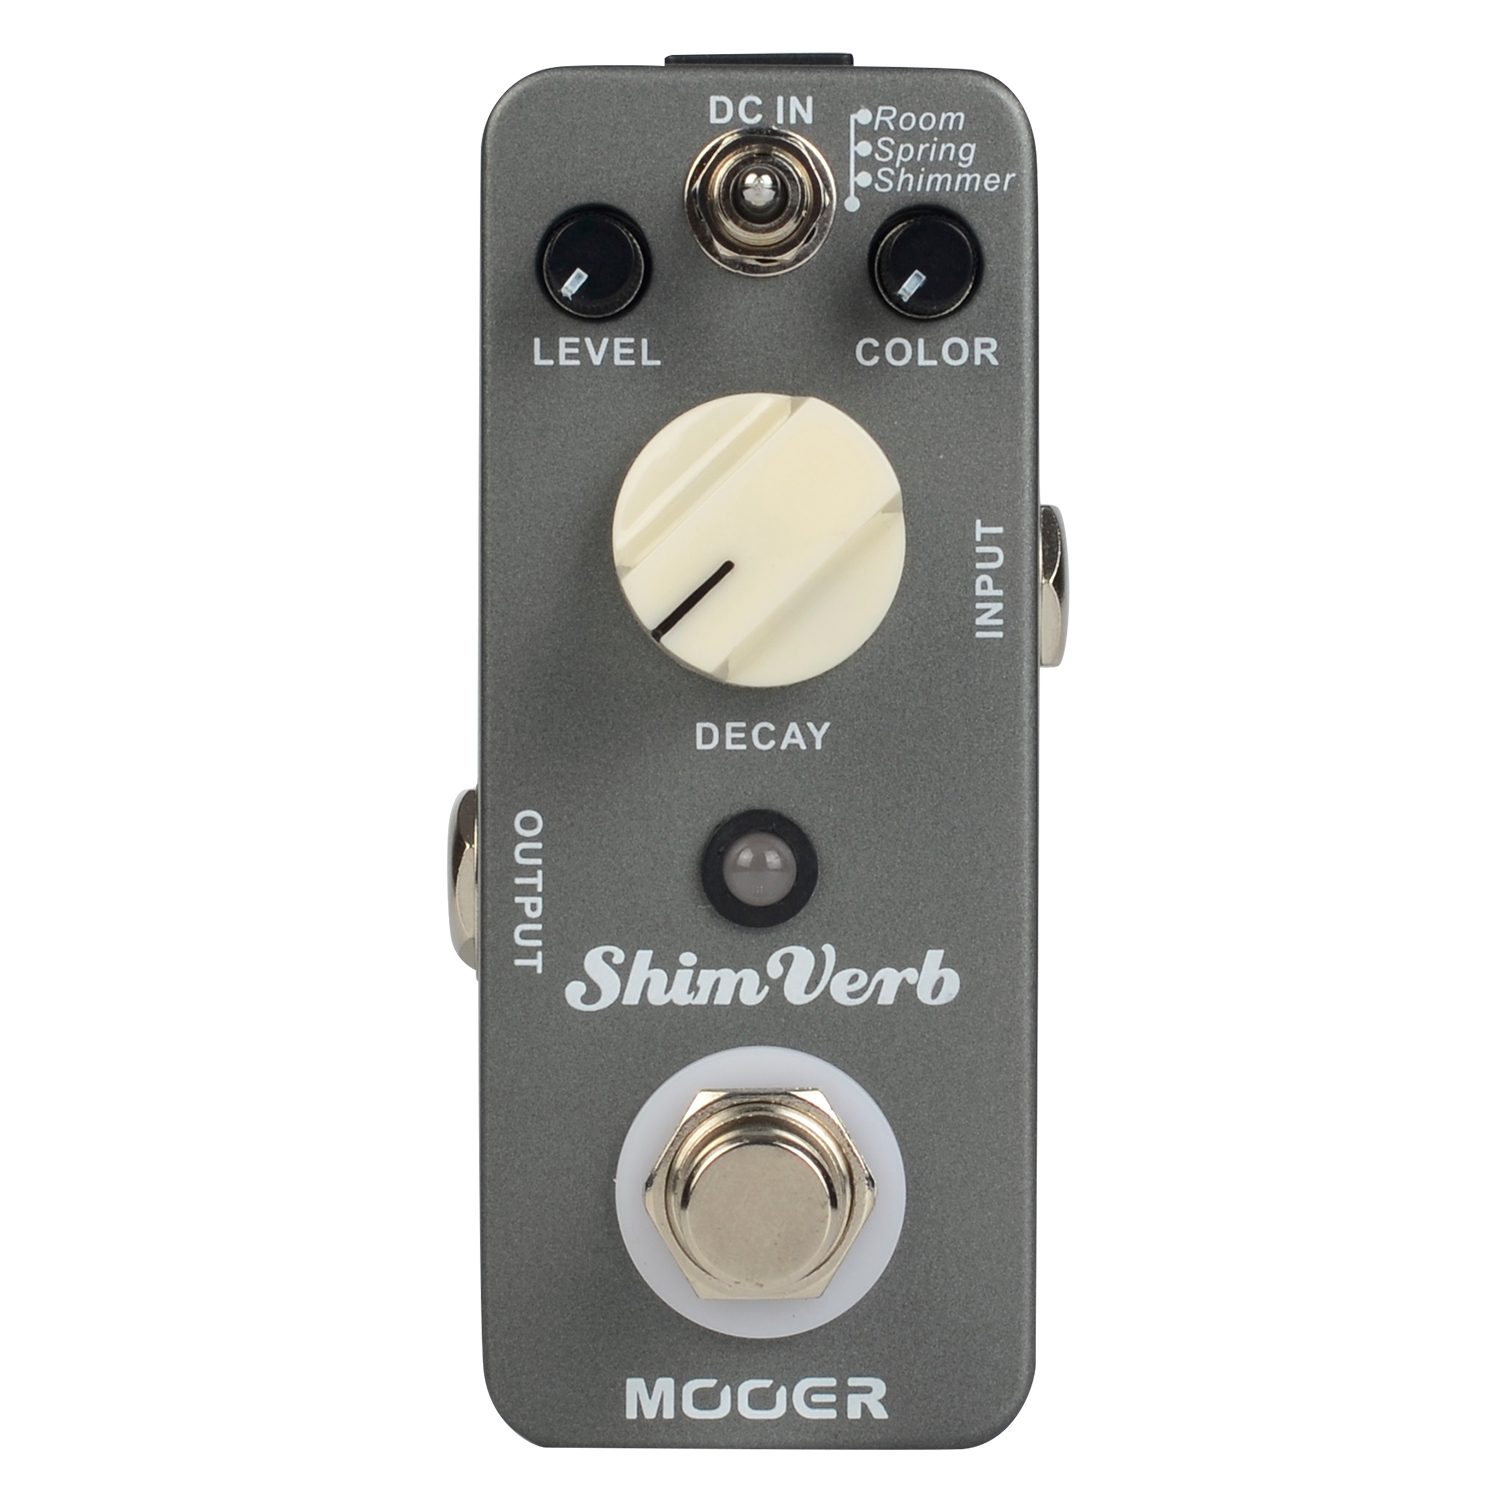 Mooer Shim Verb Digital Reverb Guitar Pedal Effect Pedal True Bypass Full Metal Shell MRV1 joyo jf 317 space verb digital reverb mini electric guitar effect pedal with knob guard true bypass